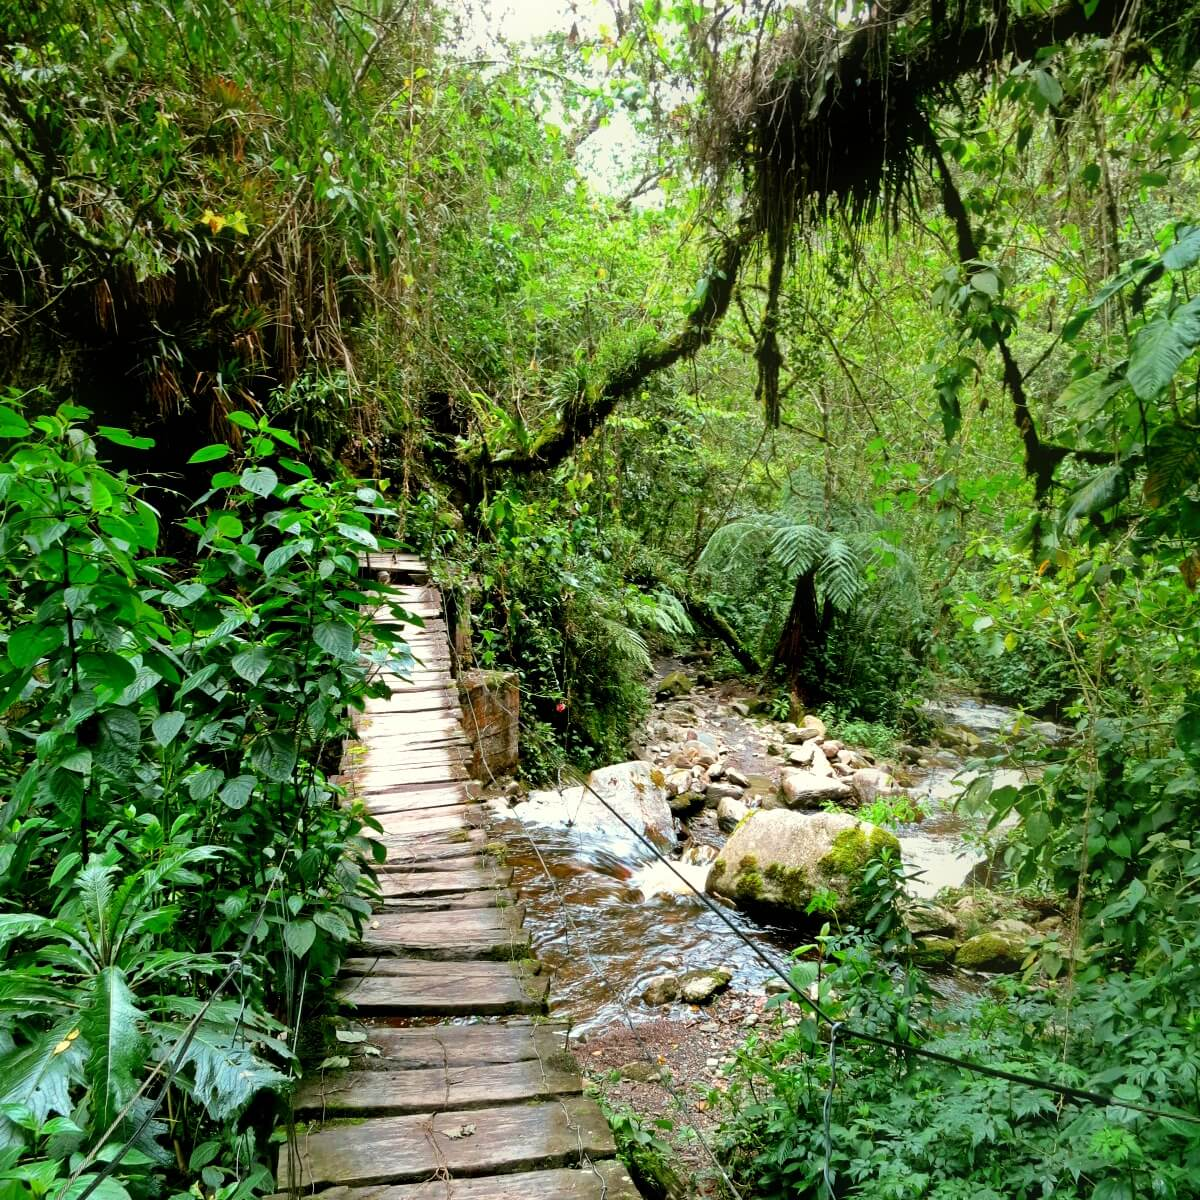 The first of 8 adventurous (ok, sketch) bridge crossings on the Valle de Cocora hike in Salento, Colombia!